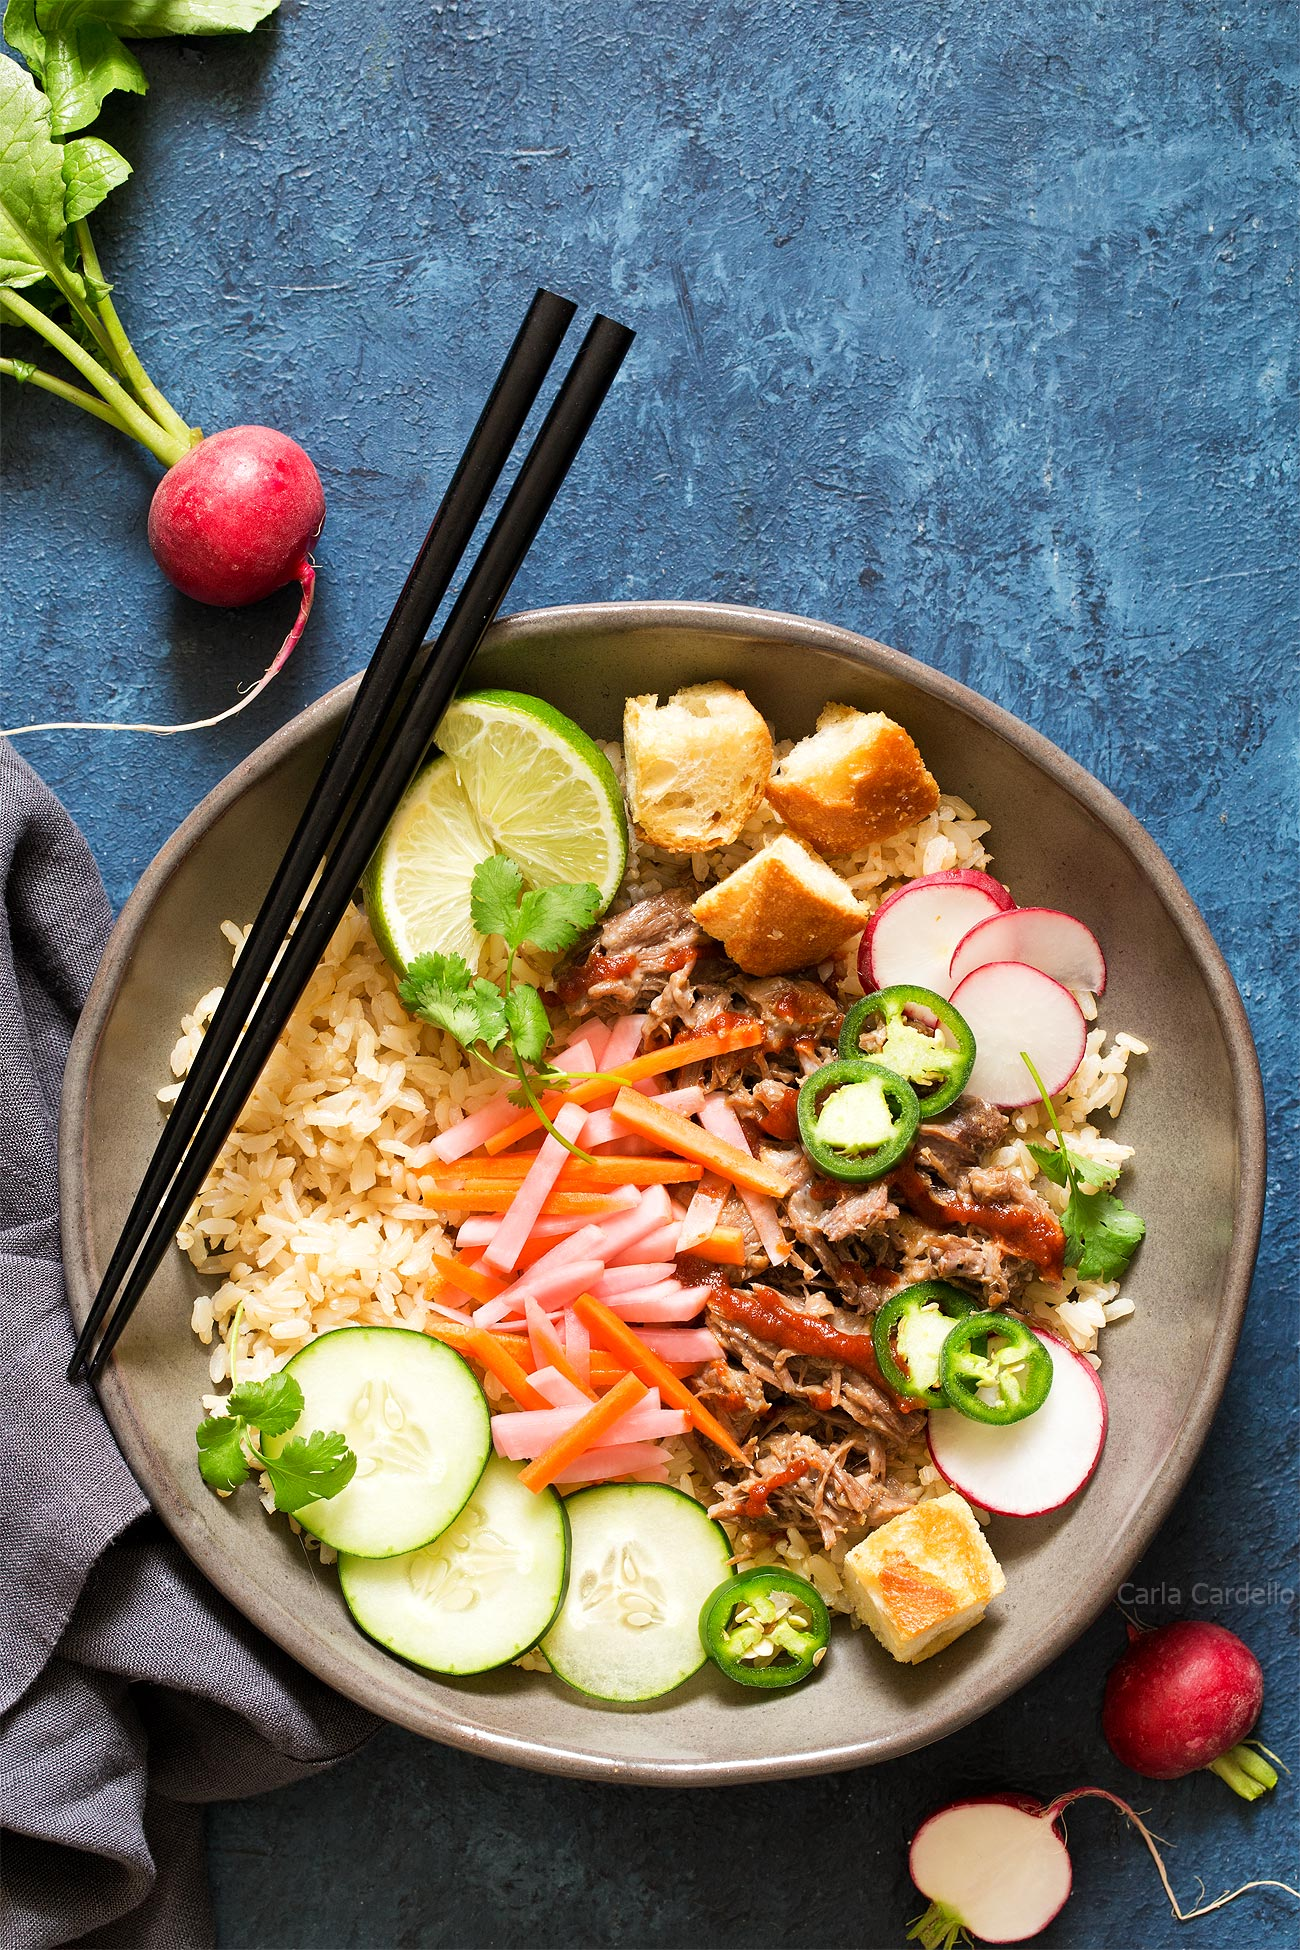 Slow Cooker Banh Mi Rice Bowls with pork, pickled vegetables, and baguette croutons.